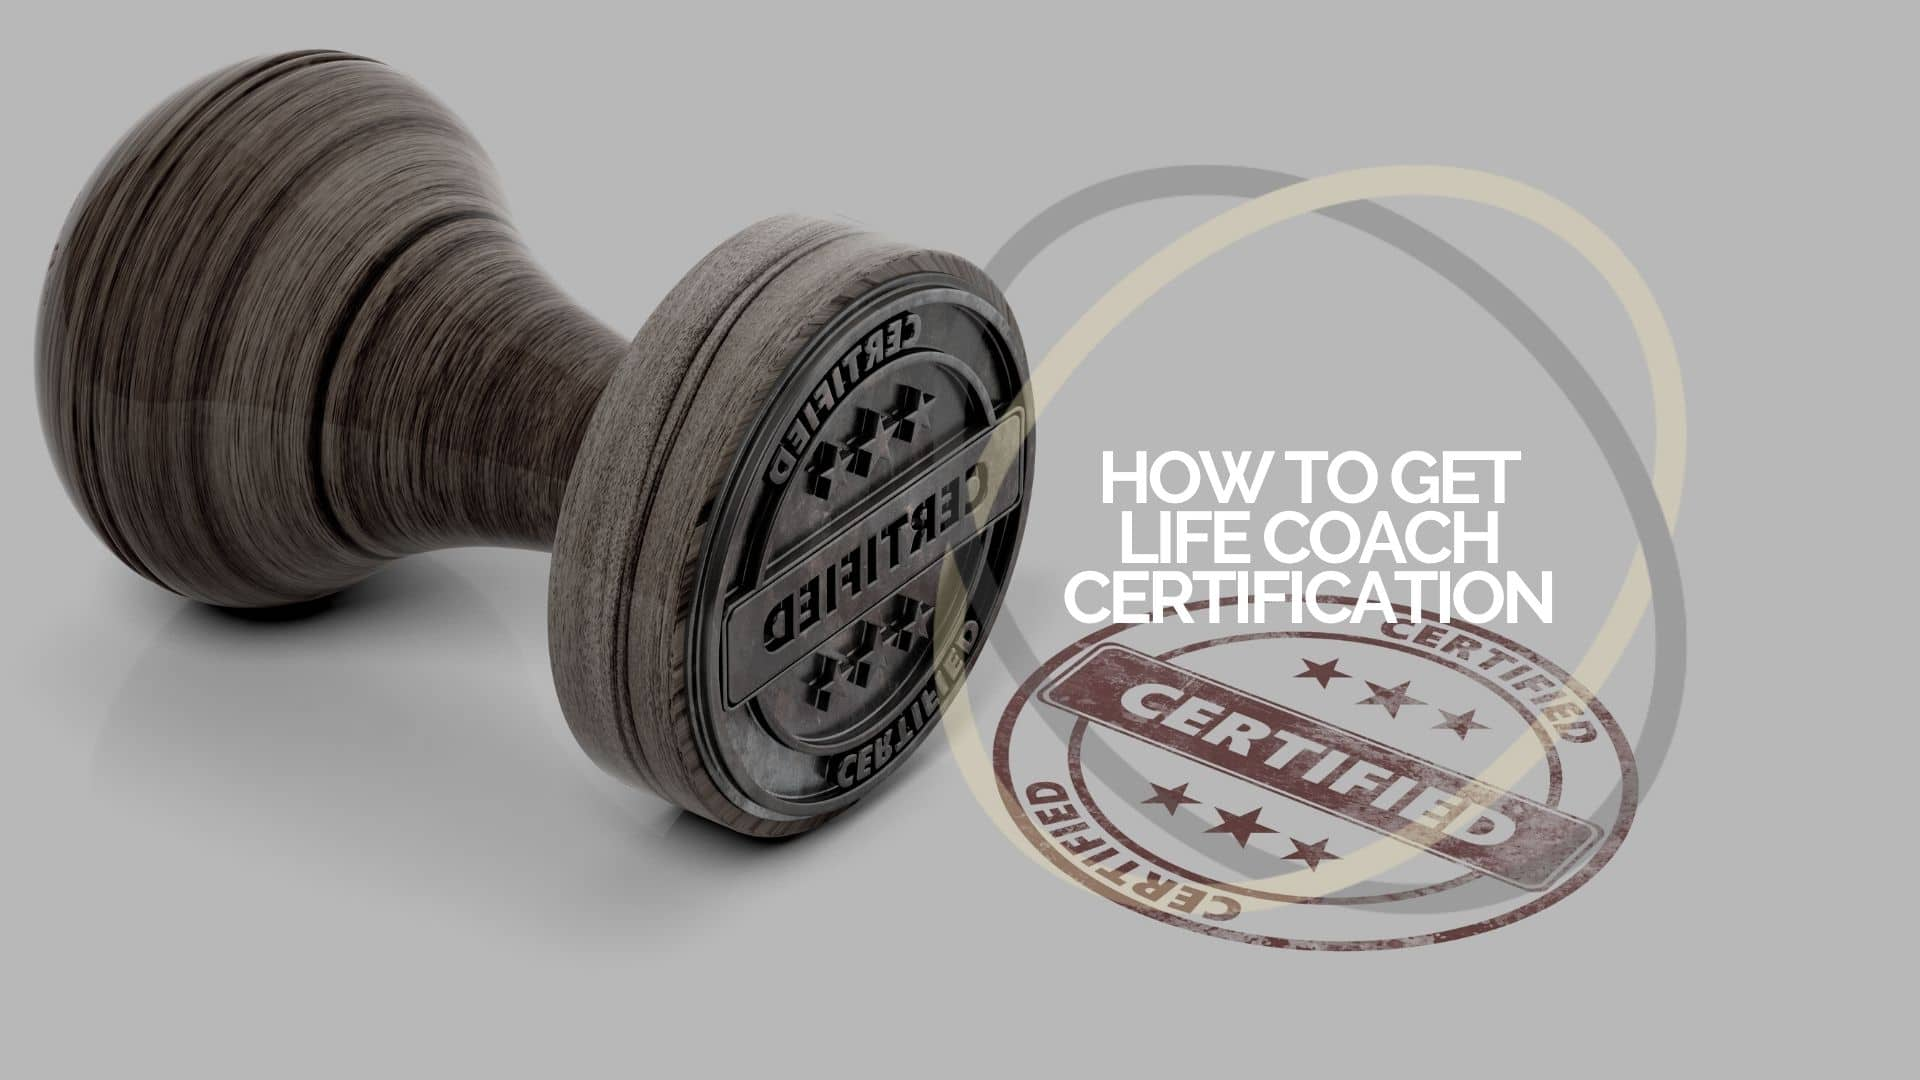 How to get Life Coach Certification